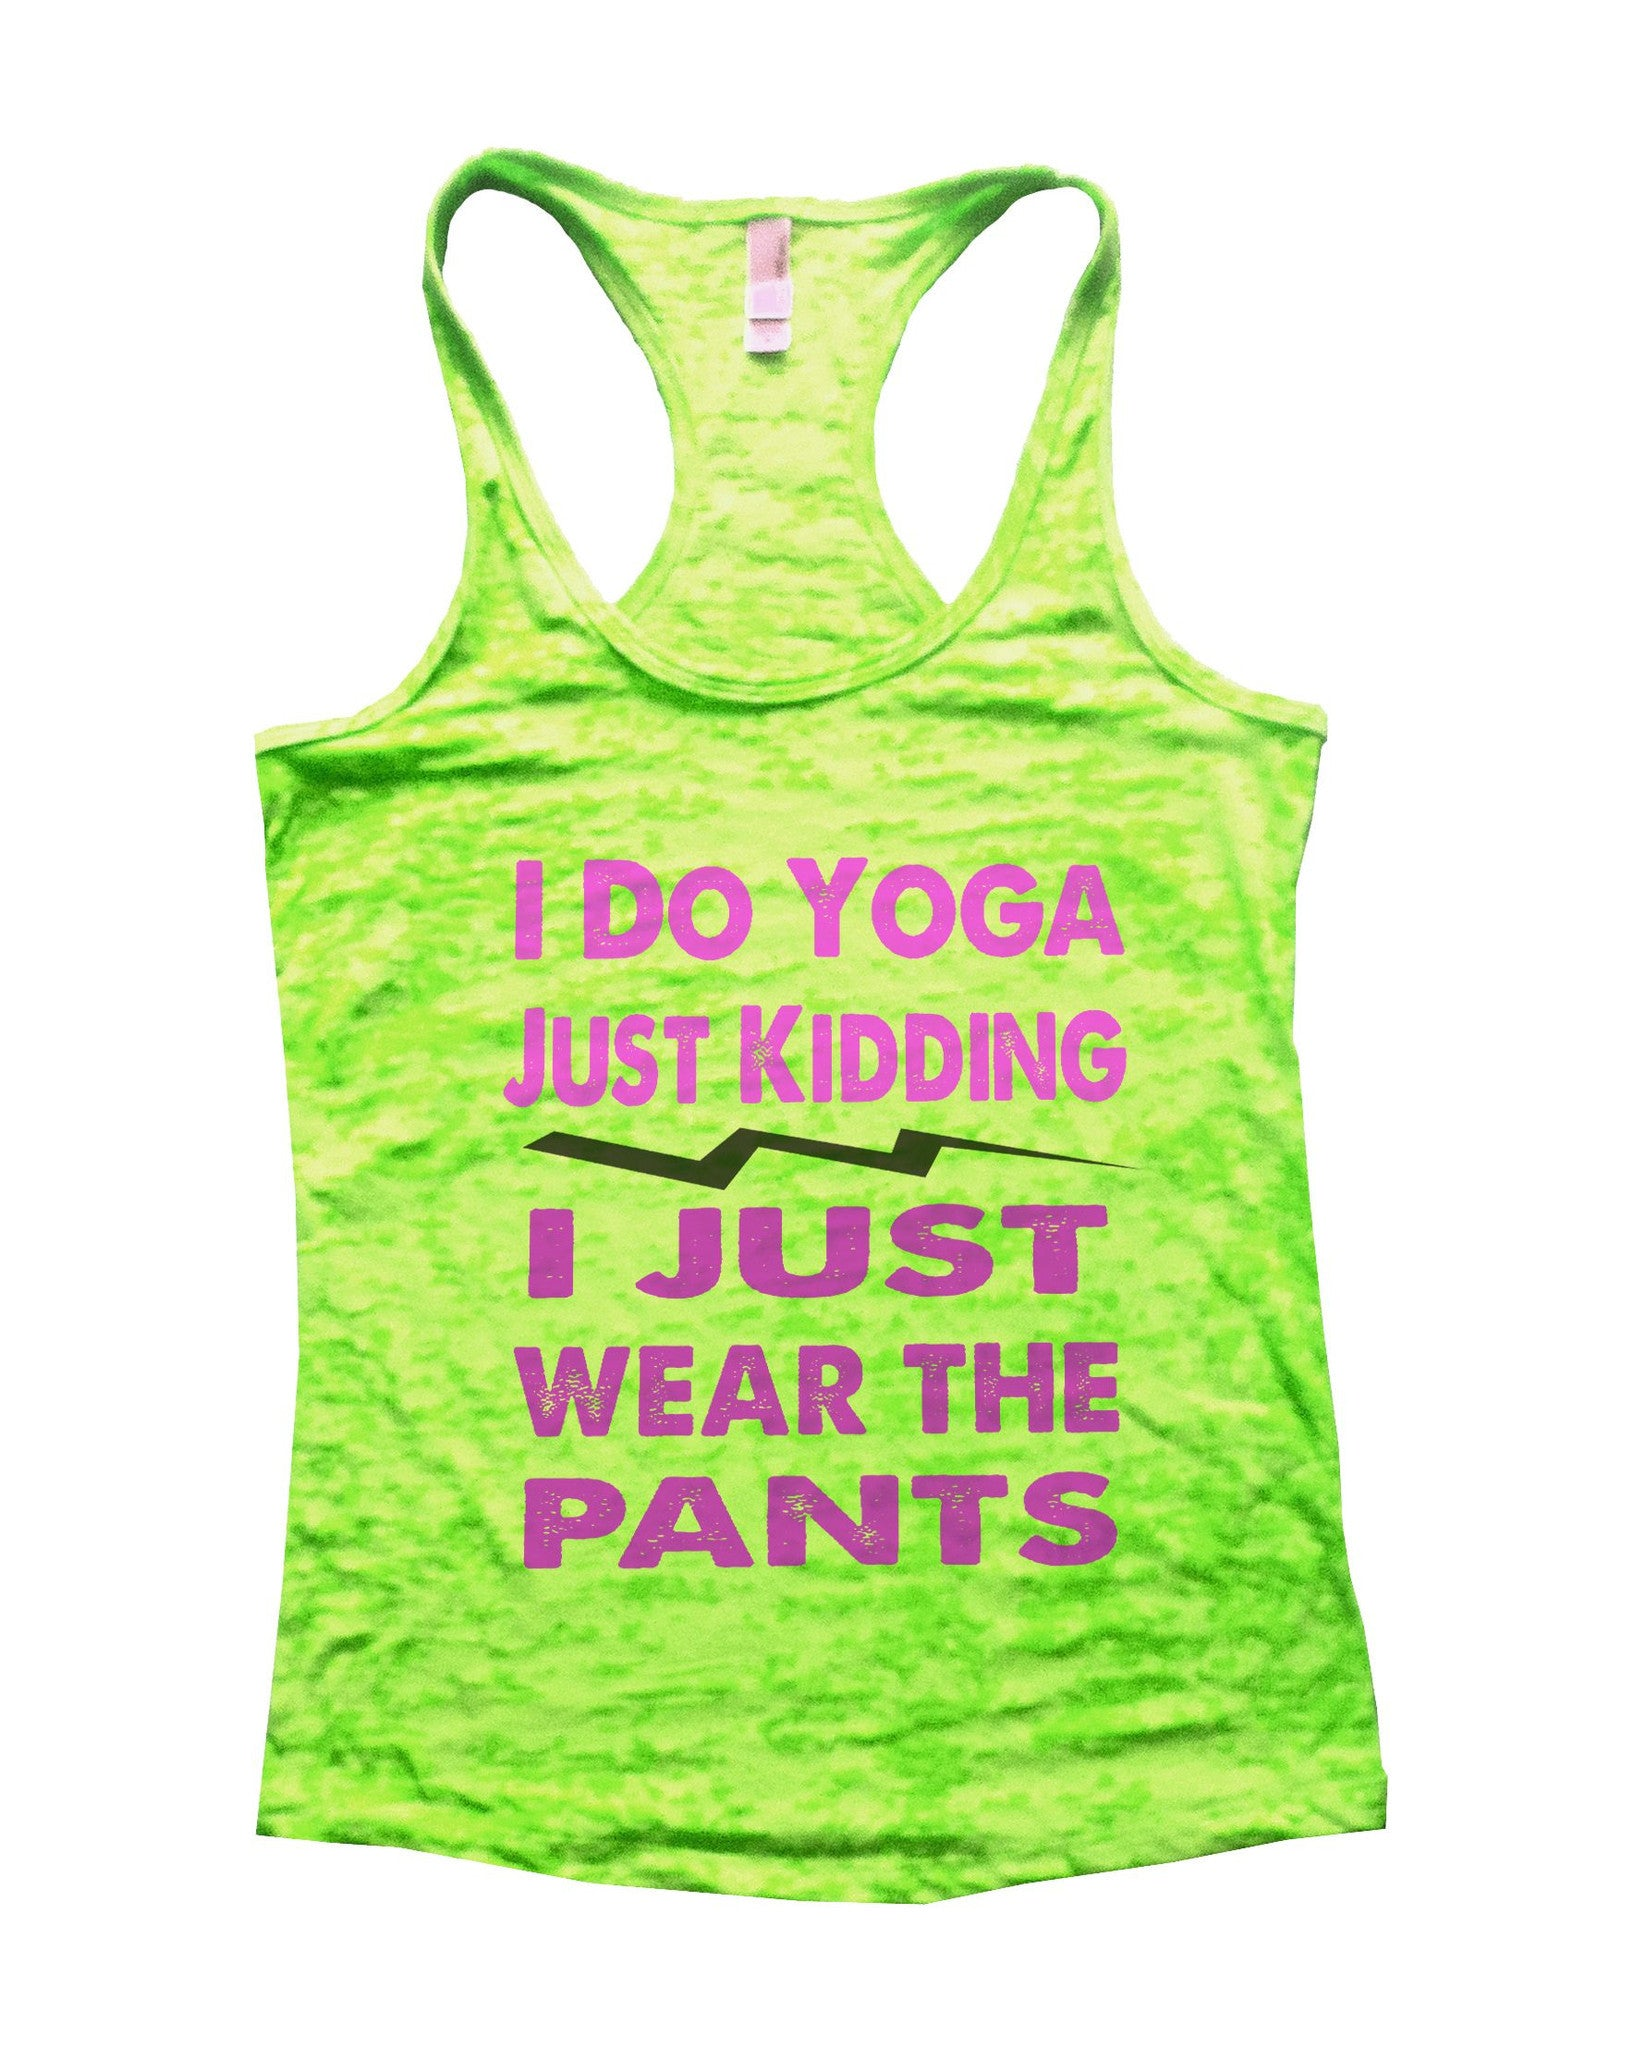 I Do Yoga Just Kidding I Just Wear The Pants Burnout Tank Top By BurnoutTankTops.com - 633 - Funny Shirts Tank Tops Burnouts and Triblends  - 2